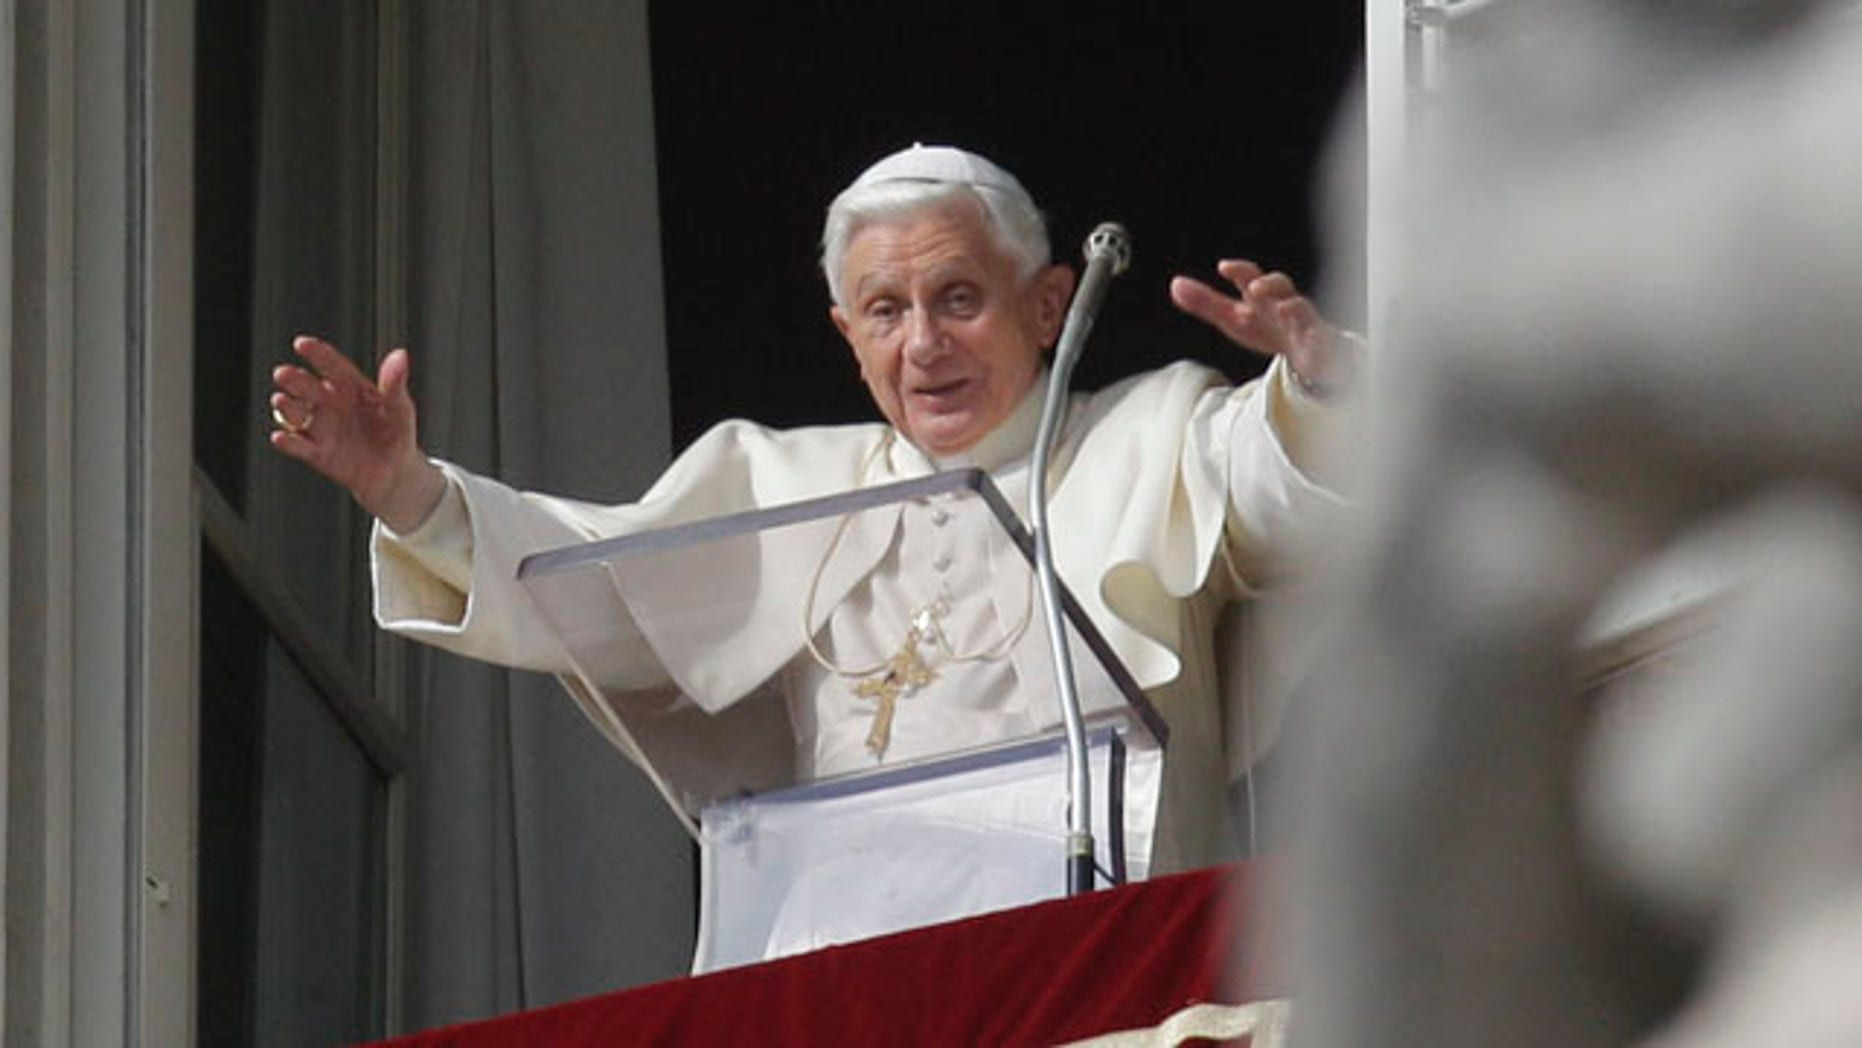 Pope Benedict XVI delivers his message during his Angelus prayer from his studio window overlooking St. Peter's Square at the Vatican, Sunday, Nov. 14, 2010.